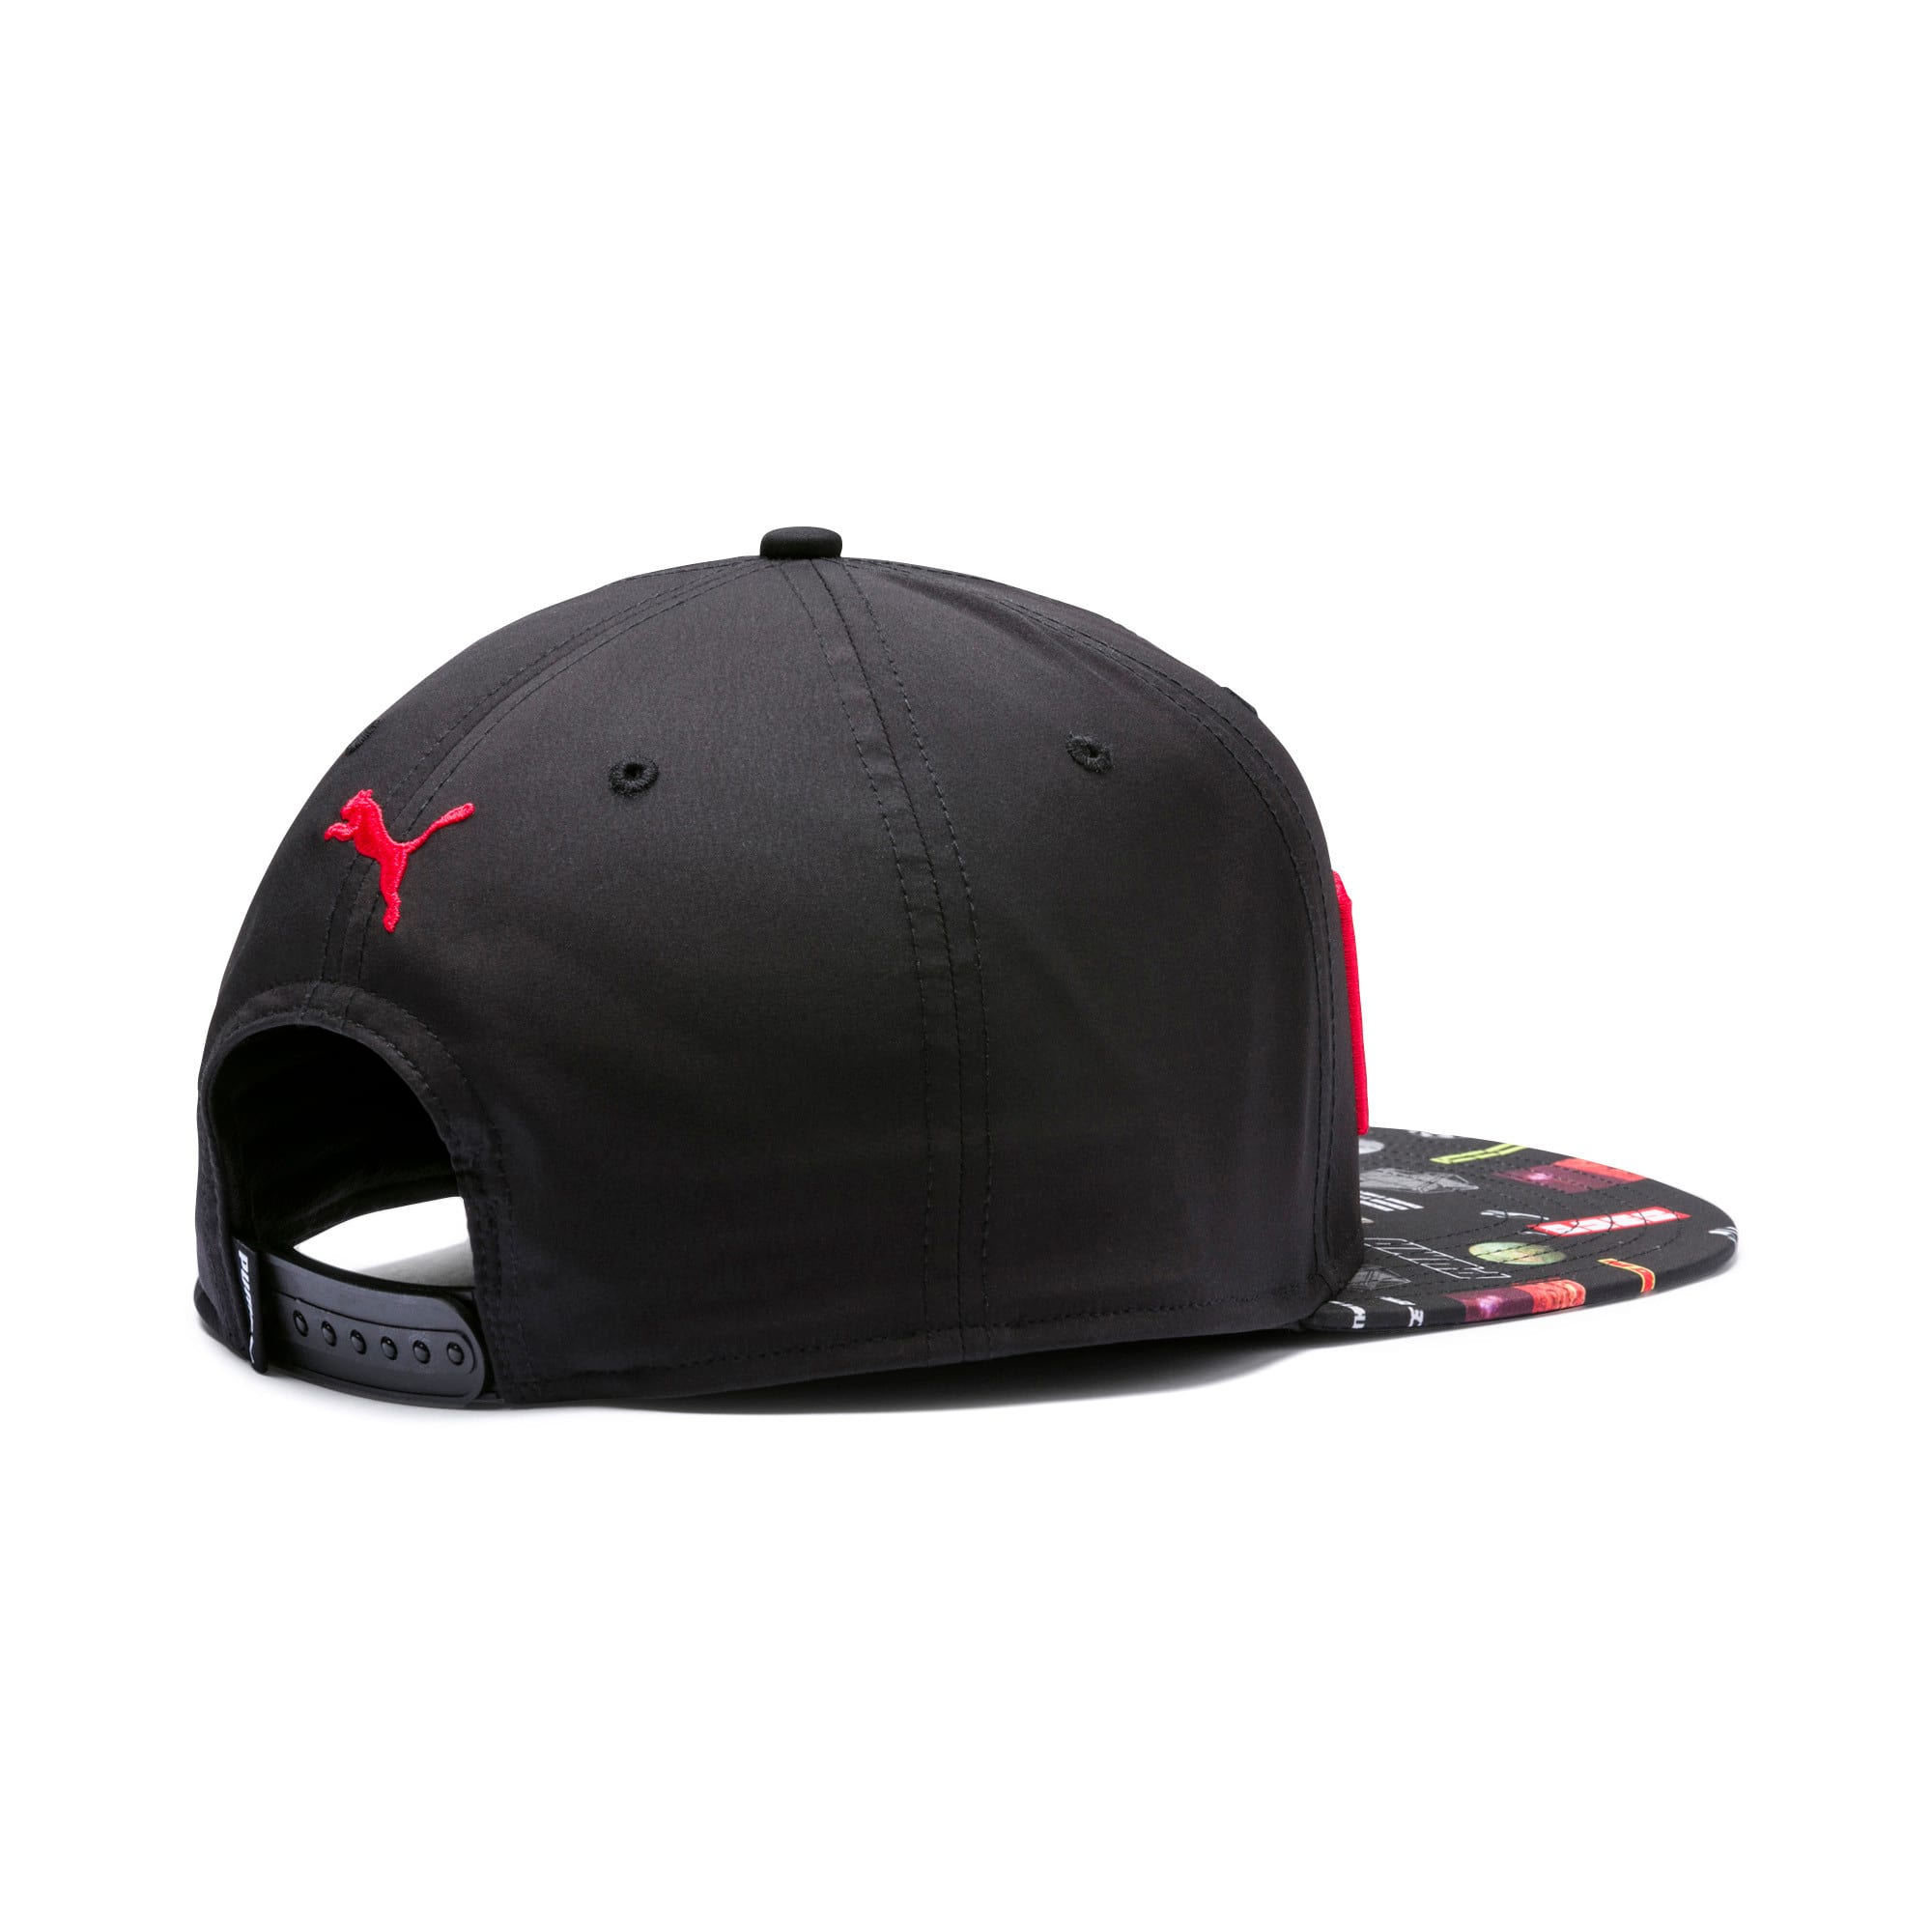 Thumbnail 2 of Flatbrim Cap, Puma Black-Graphic, medium